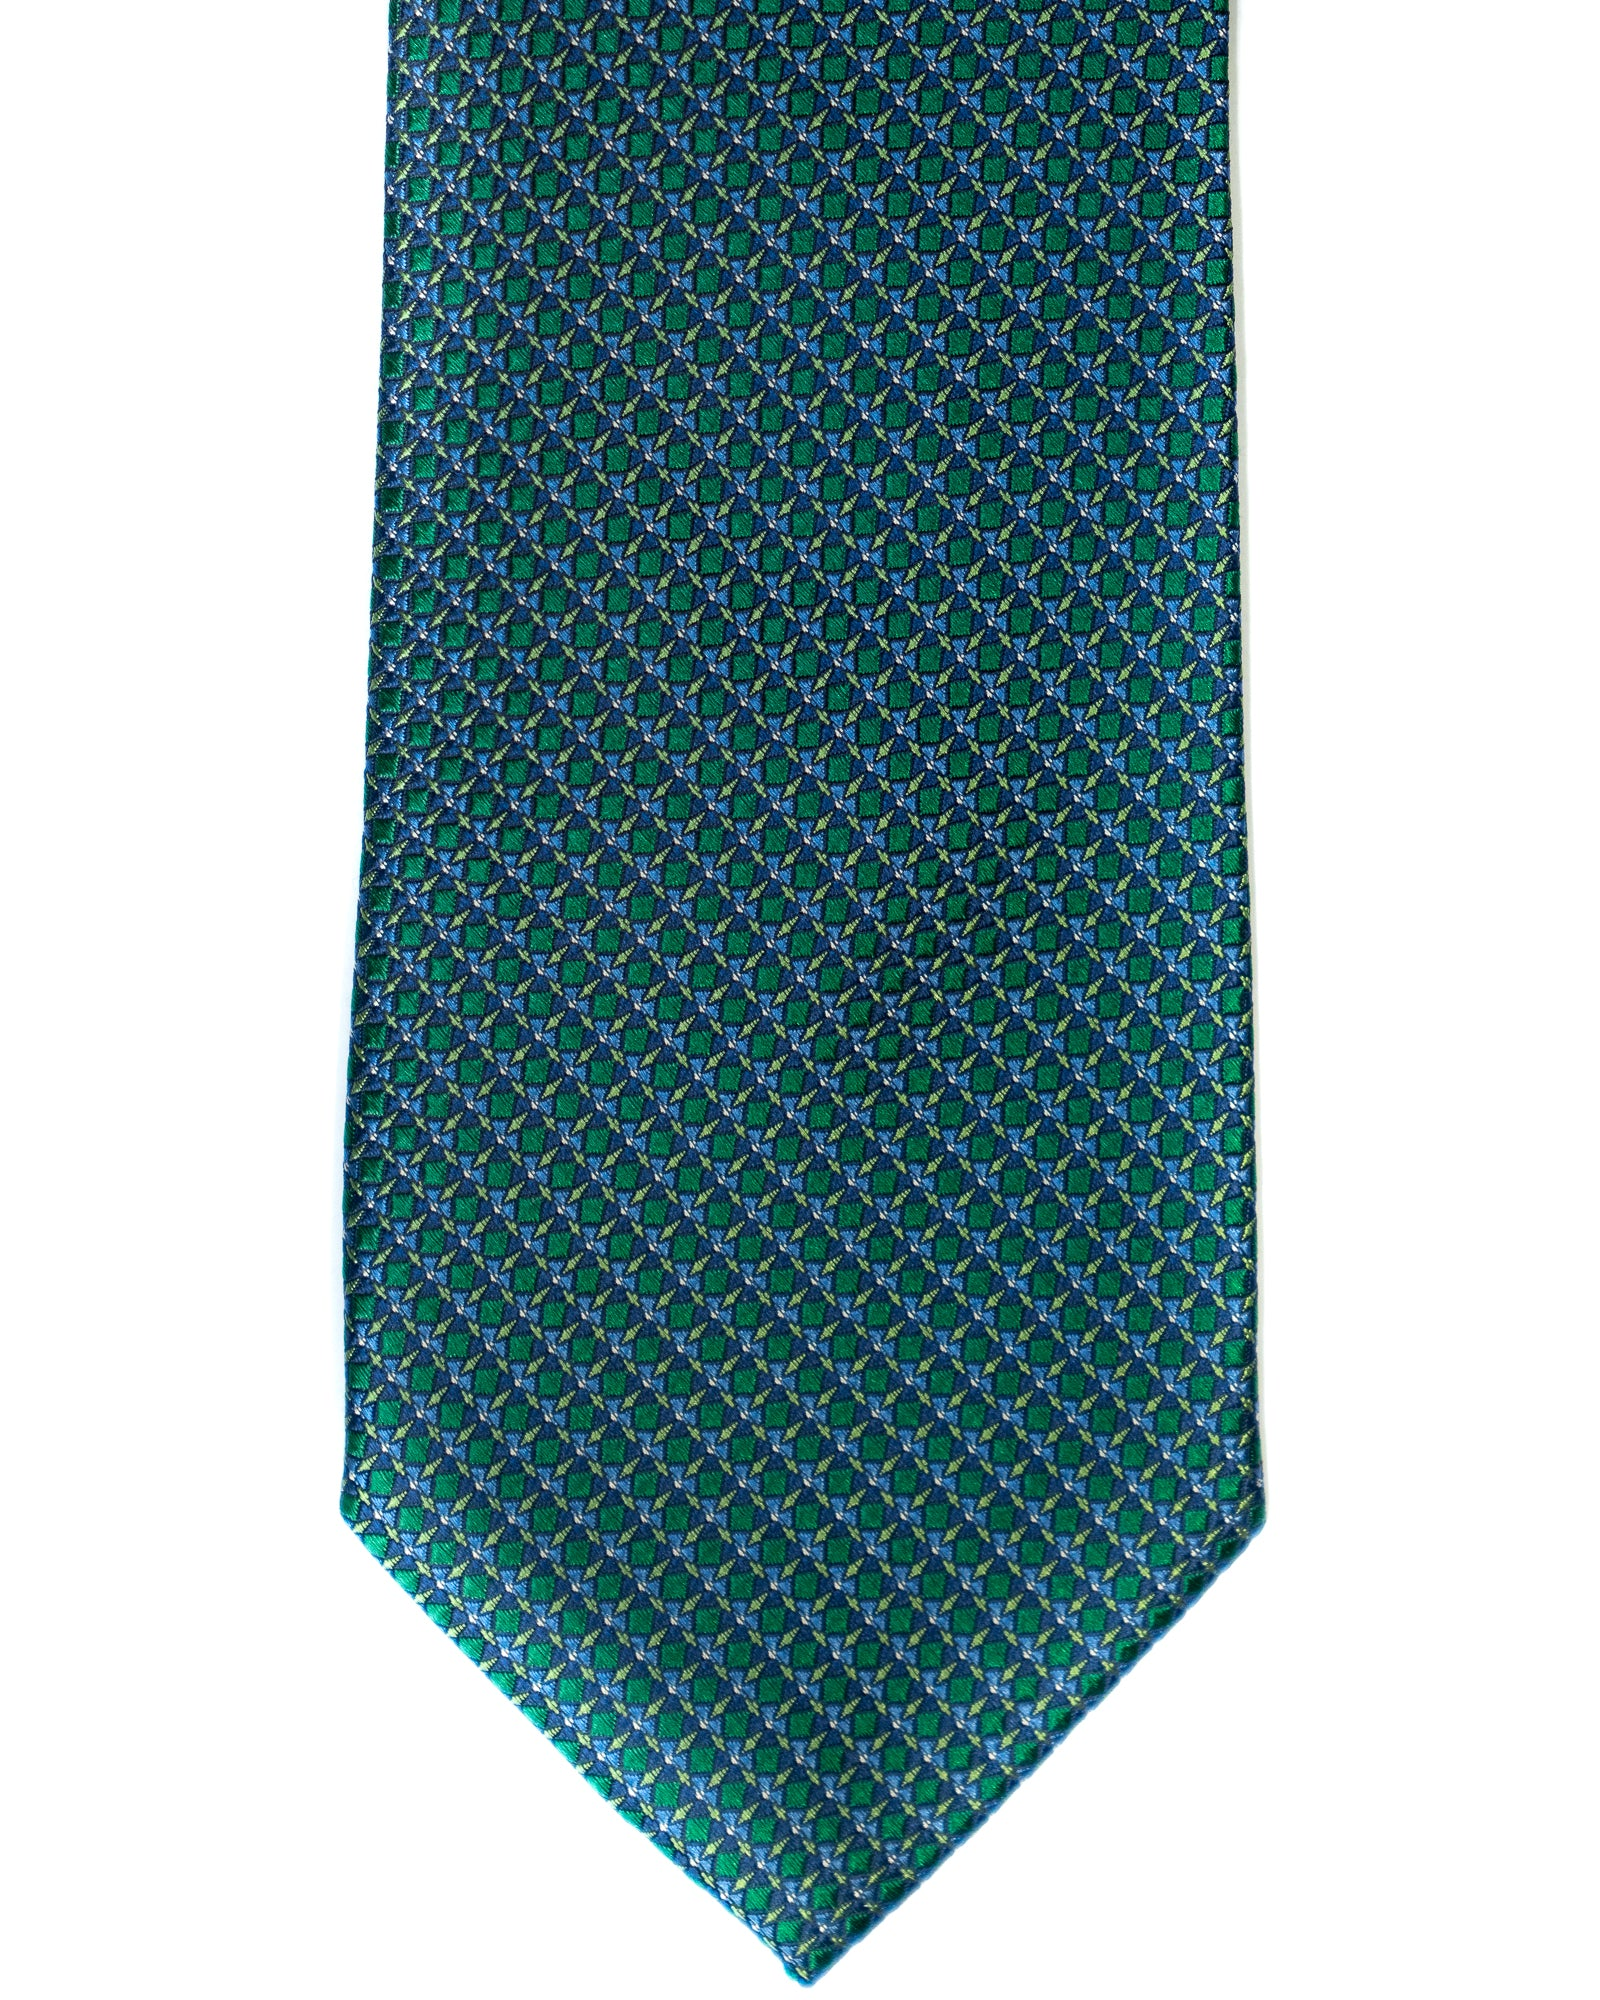 Silk Tie In Teal Green With Navy Foulard & Circle Print - Rainwater's Men's Clothing and Tuxedo Rental